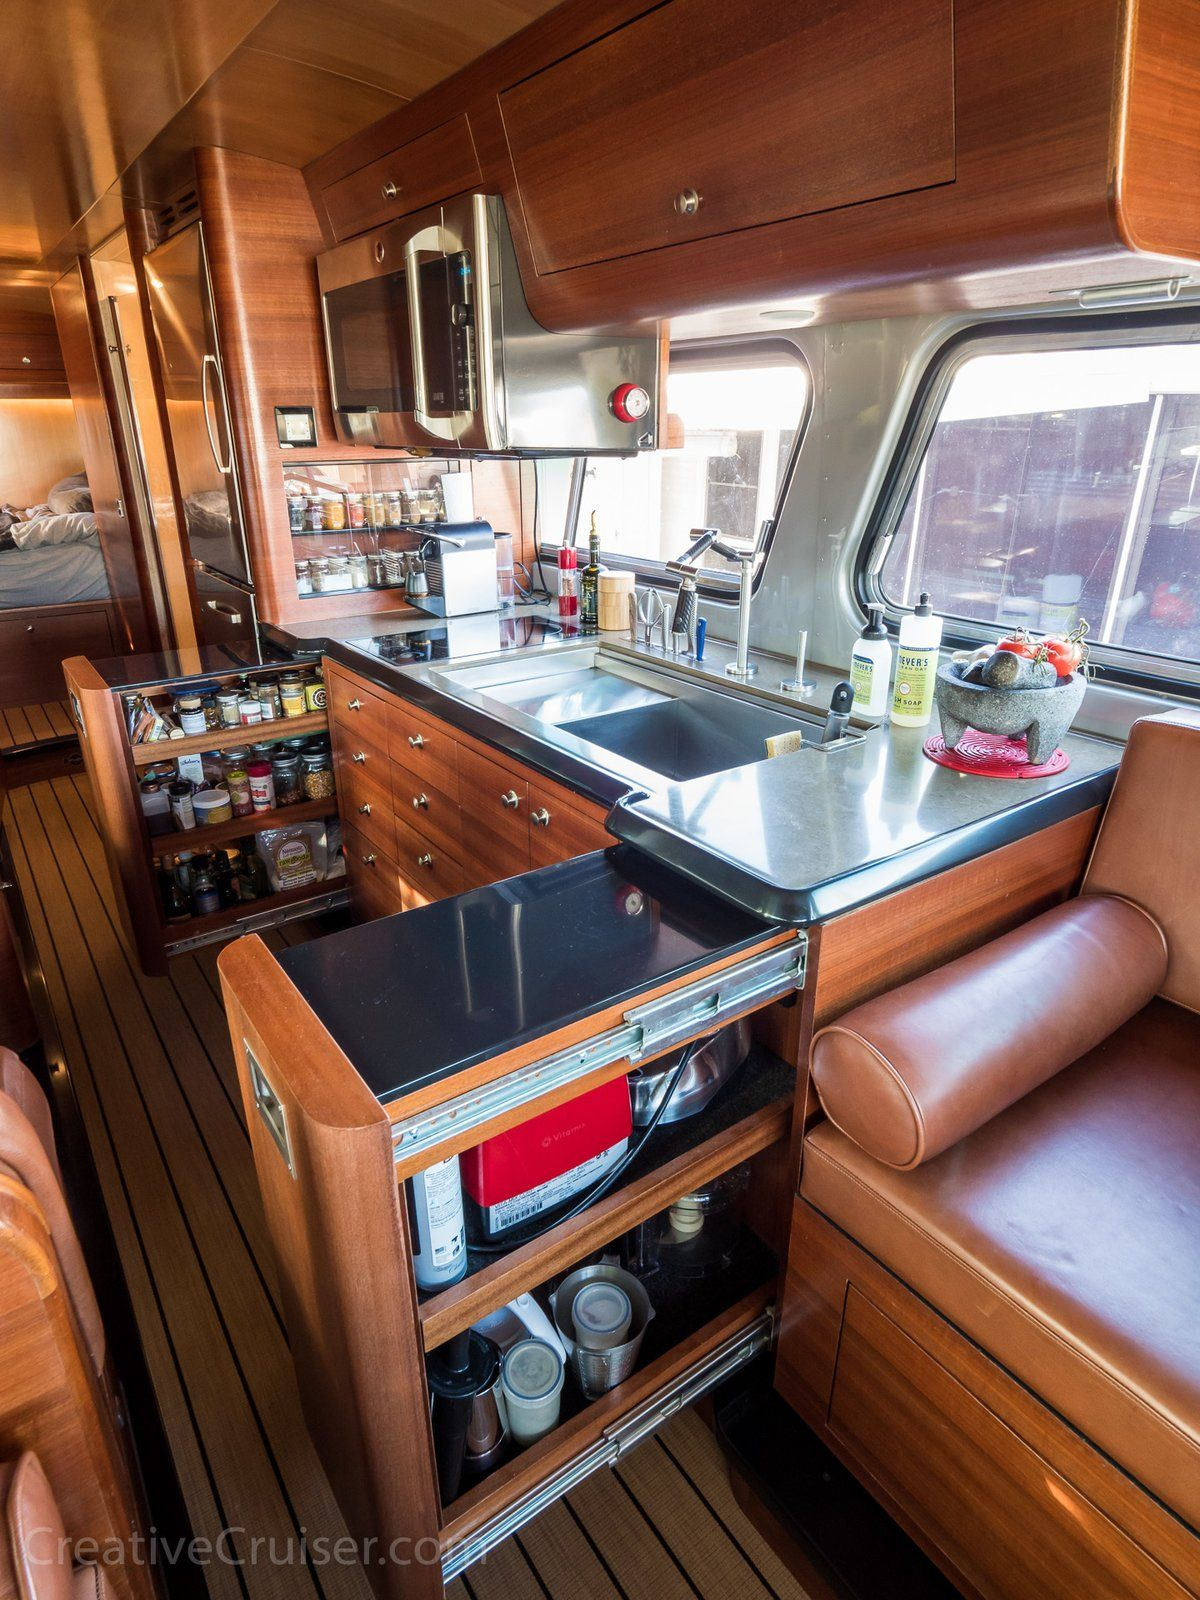 The creative cruiser by ben willmore appliance garage